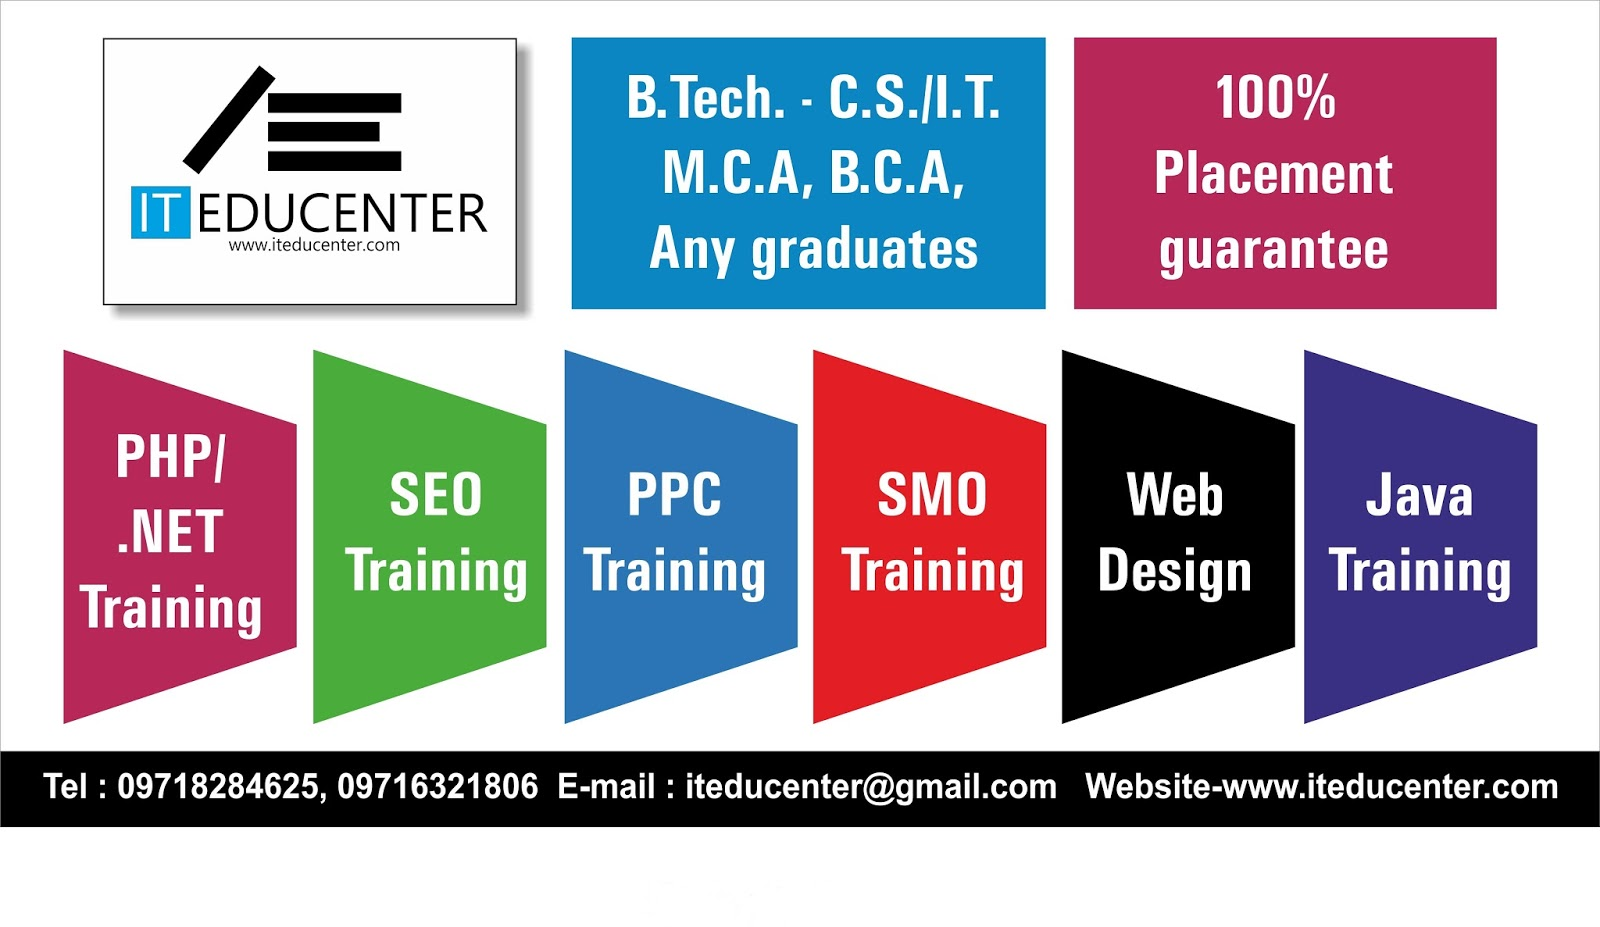 Job Training Banner Seo Training And Jobs